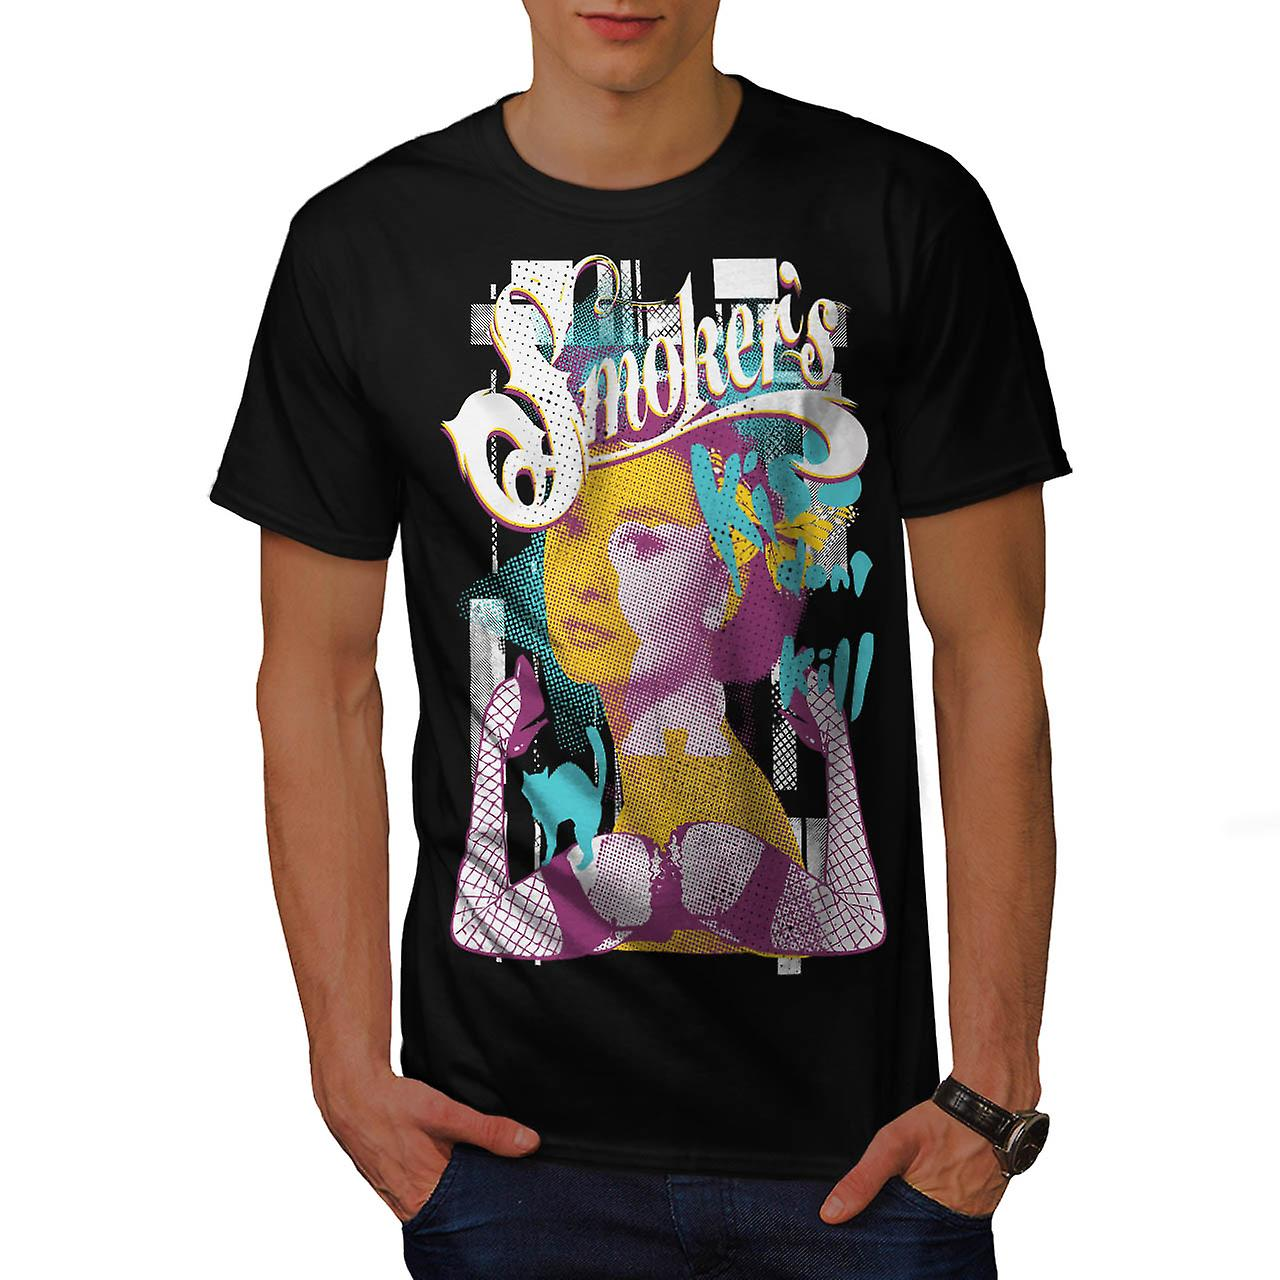 Smoker Kiss Dont Kill Audrey Leg Men Black T-shirt | Wellcoda